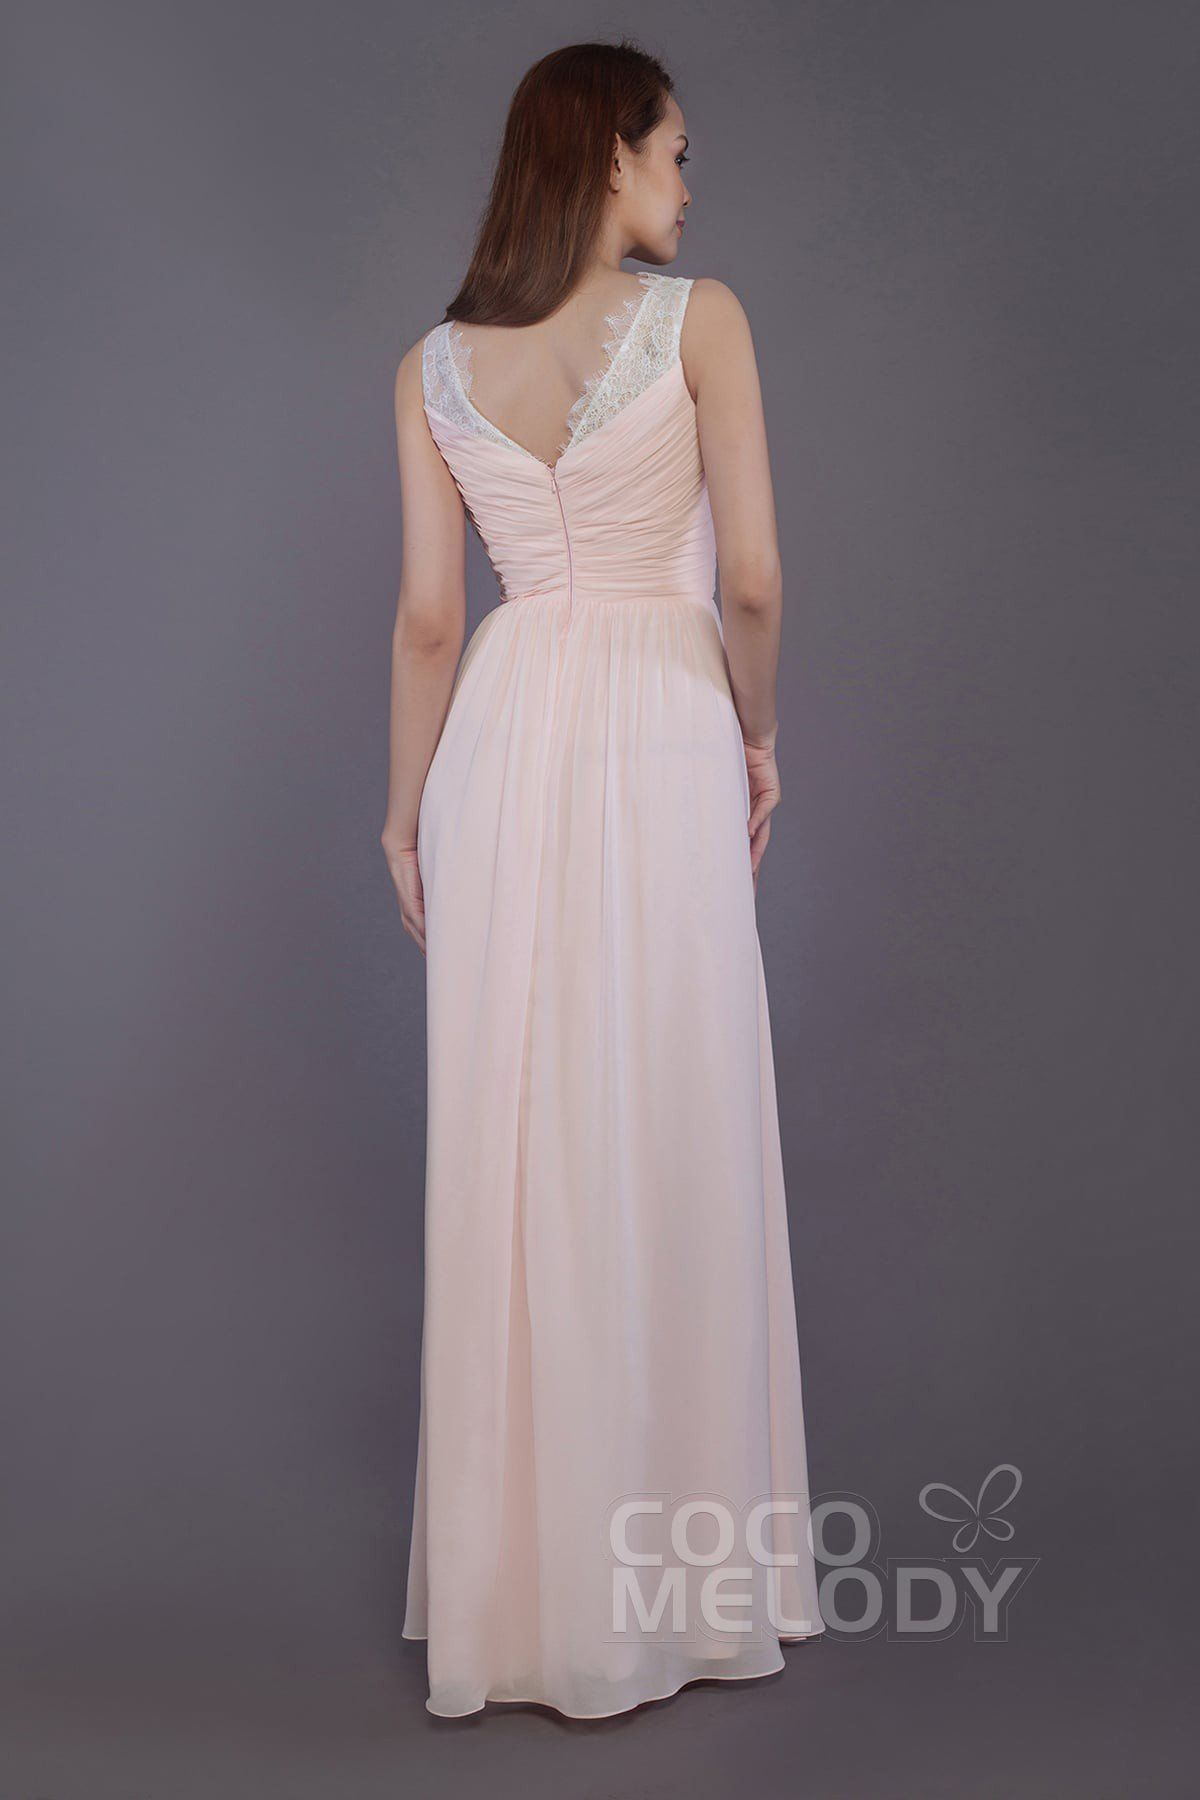 Charming Sheath-Column Straps Natural Floor Length Chiffon and Lace  Sleeveless Zipper Bridesmaid Dress with Pleating  PR3542  bridesmaids   bridesmaiddress ... 7d77171b3